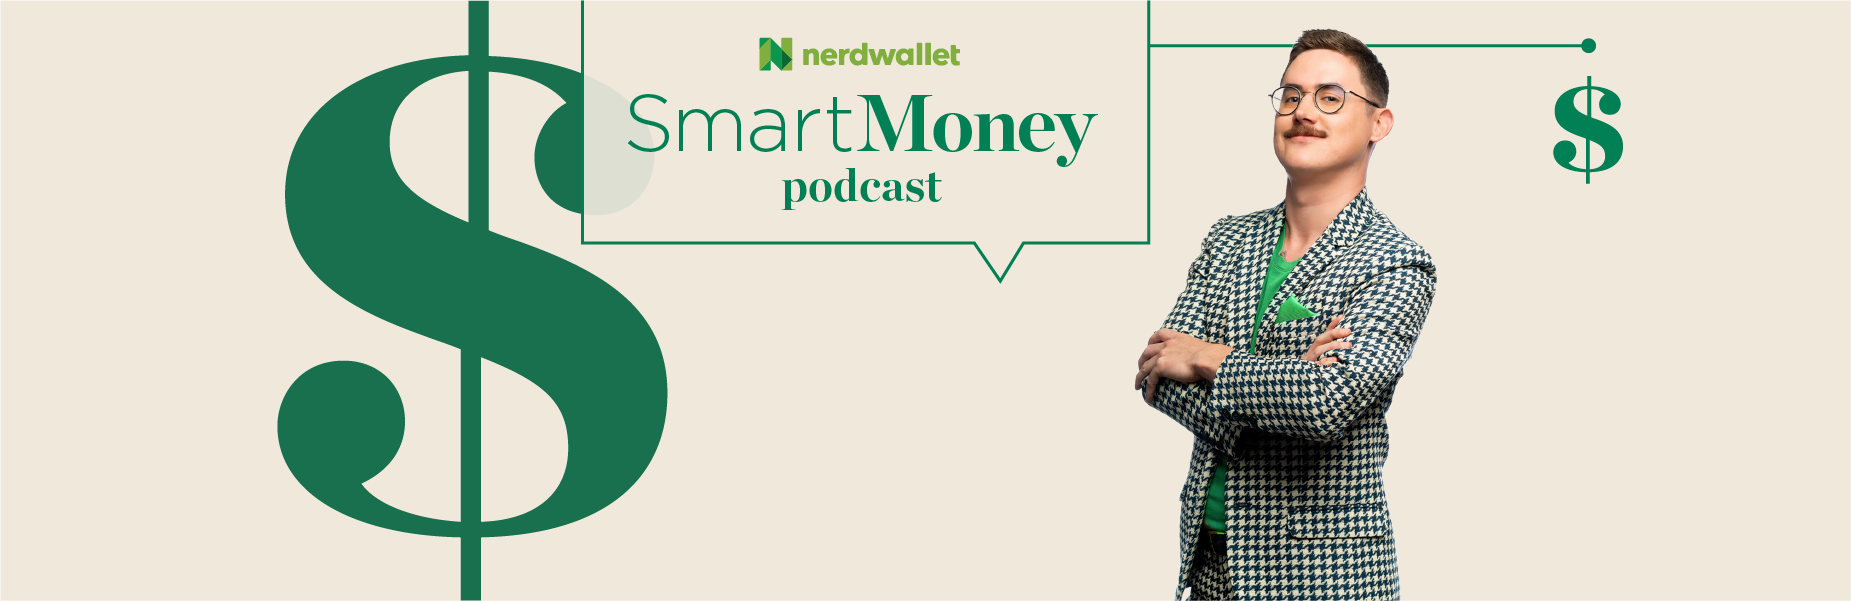 SmartMoney Podcast: 'Is Identity Theft Protection Worth It?' - NerdWallet